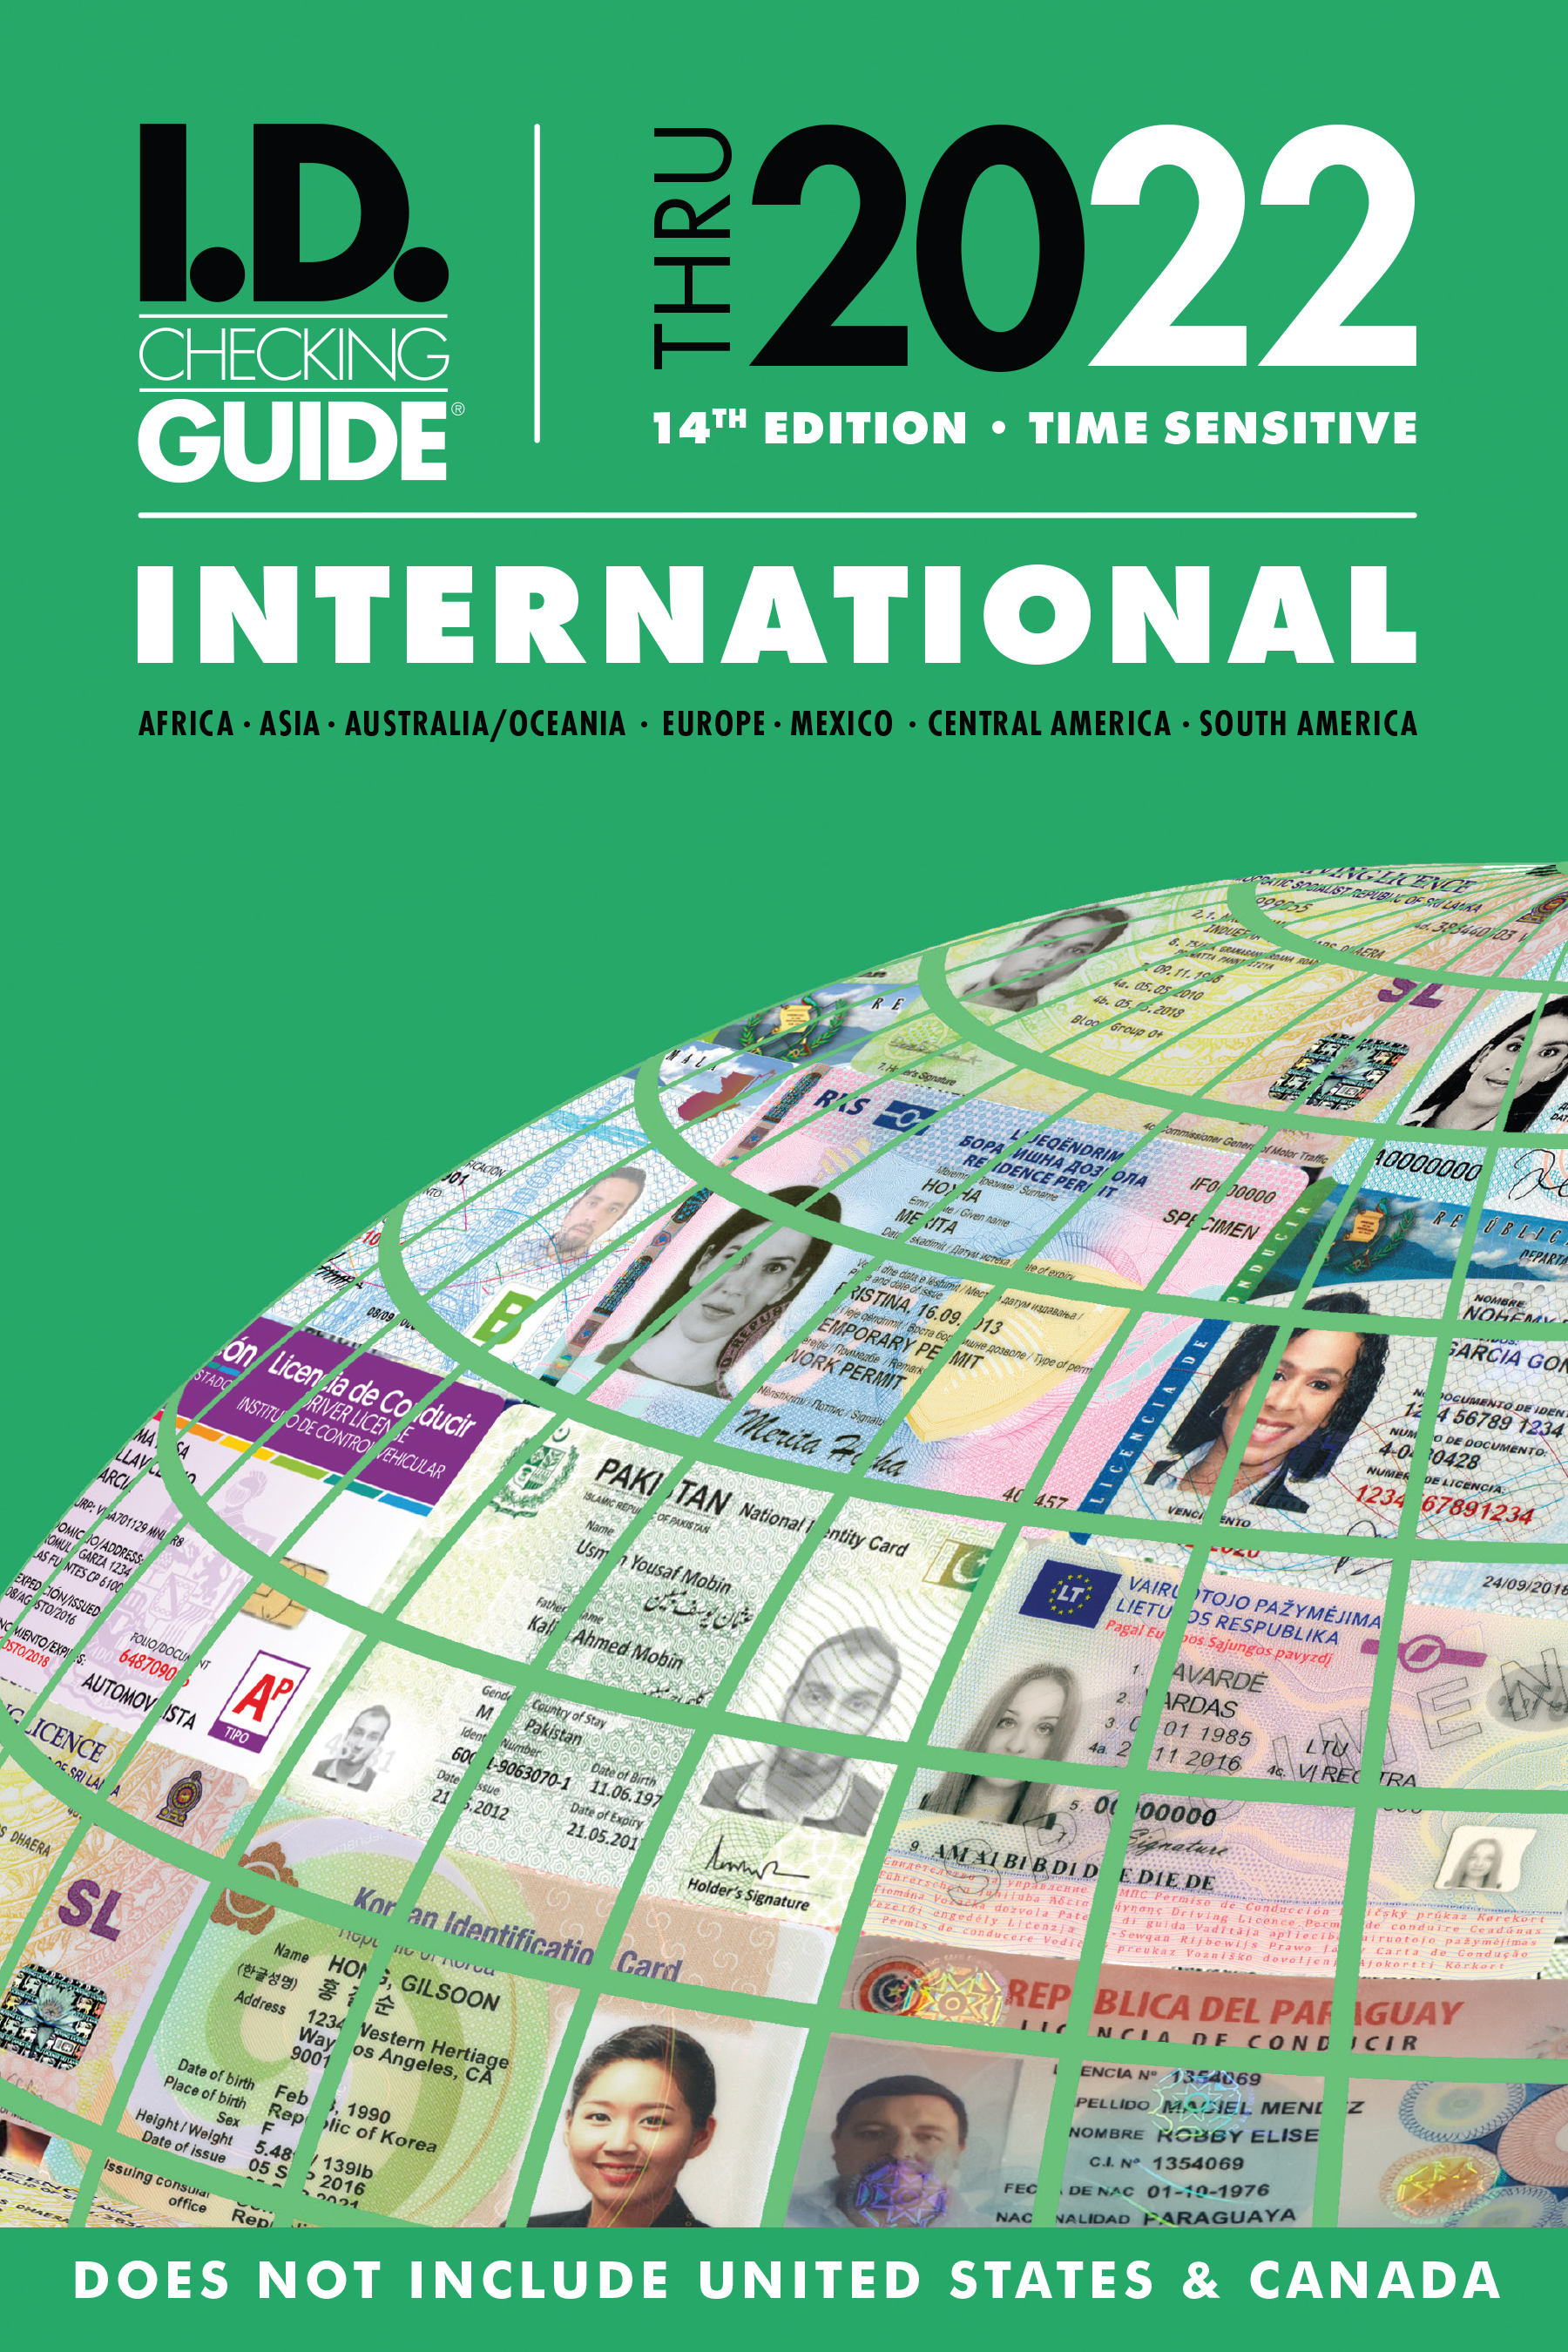 Notary I.D. Checking Guide International for Missouri Notaries